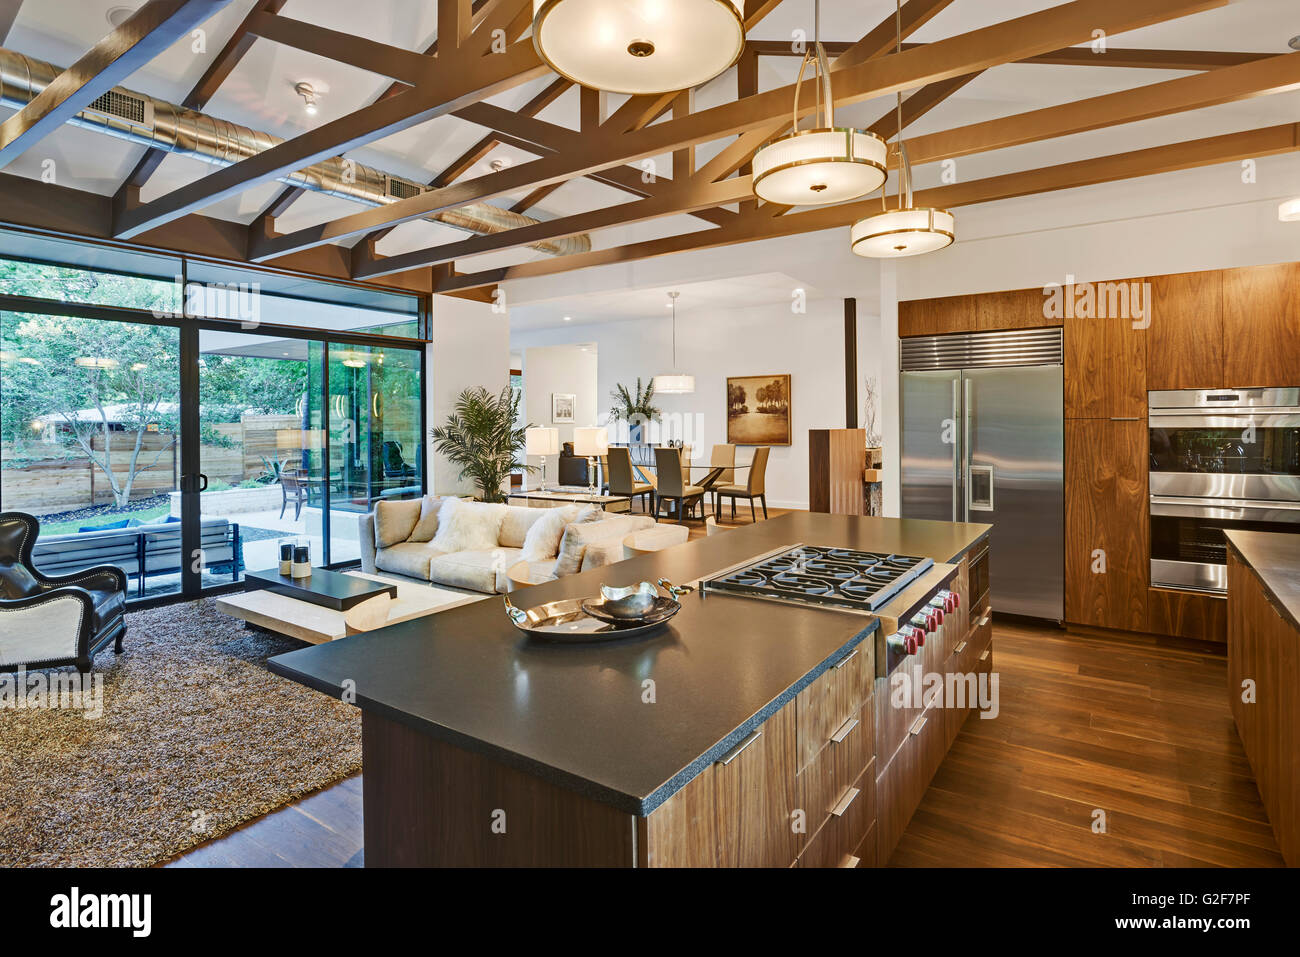 Open Floor Plan Kitchen Living Room open floor plan of house with kitchen, living room and dining room